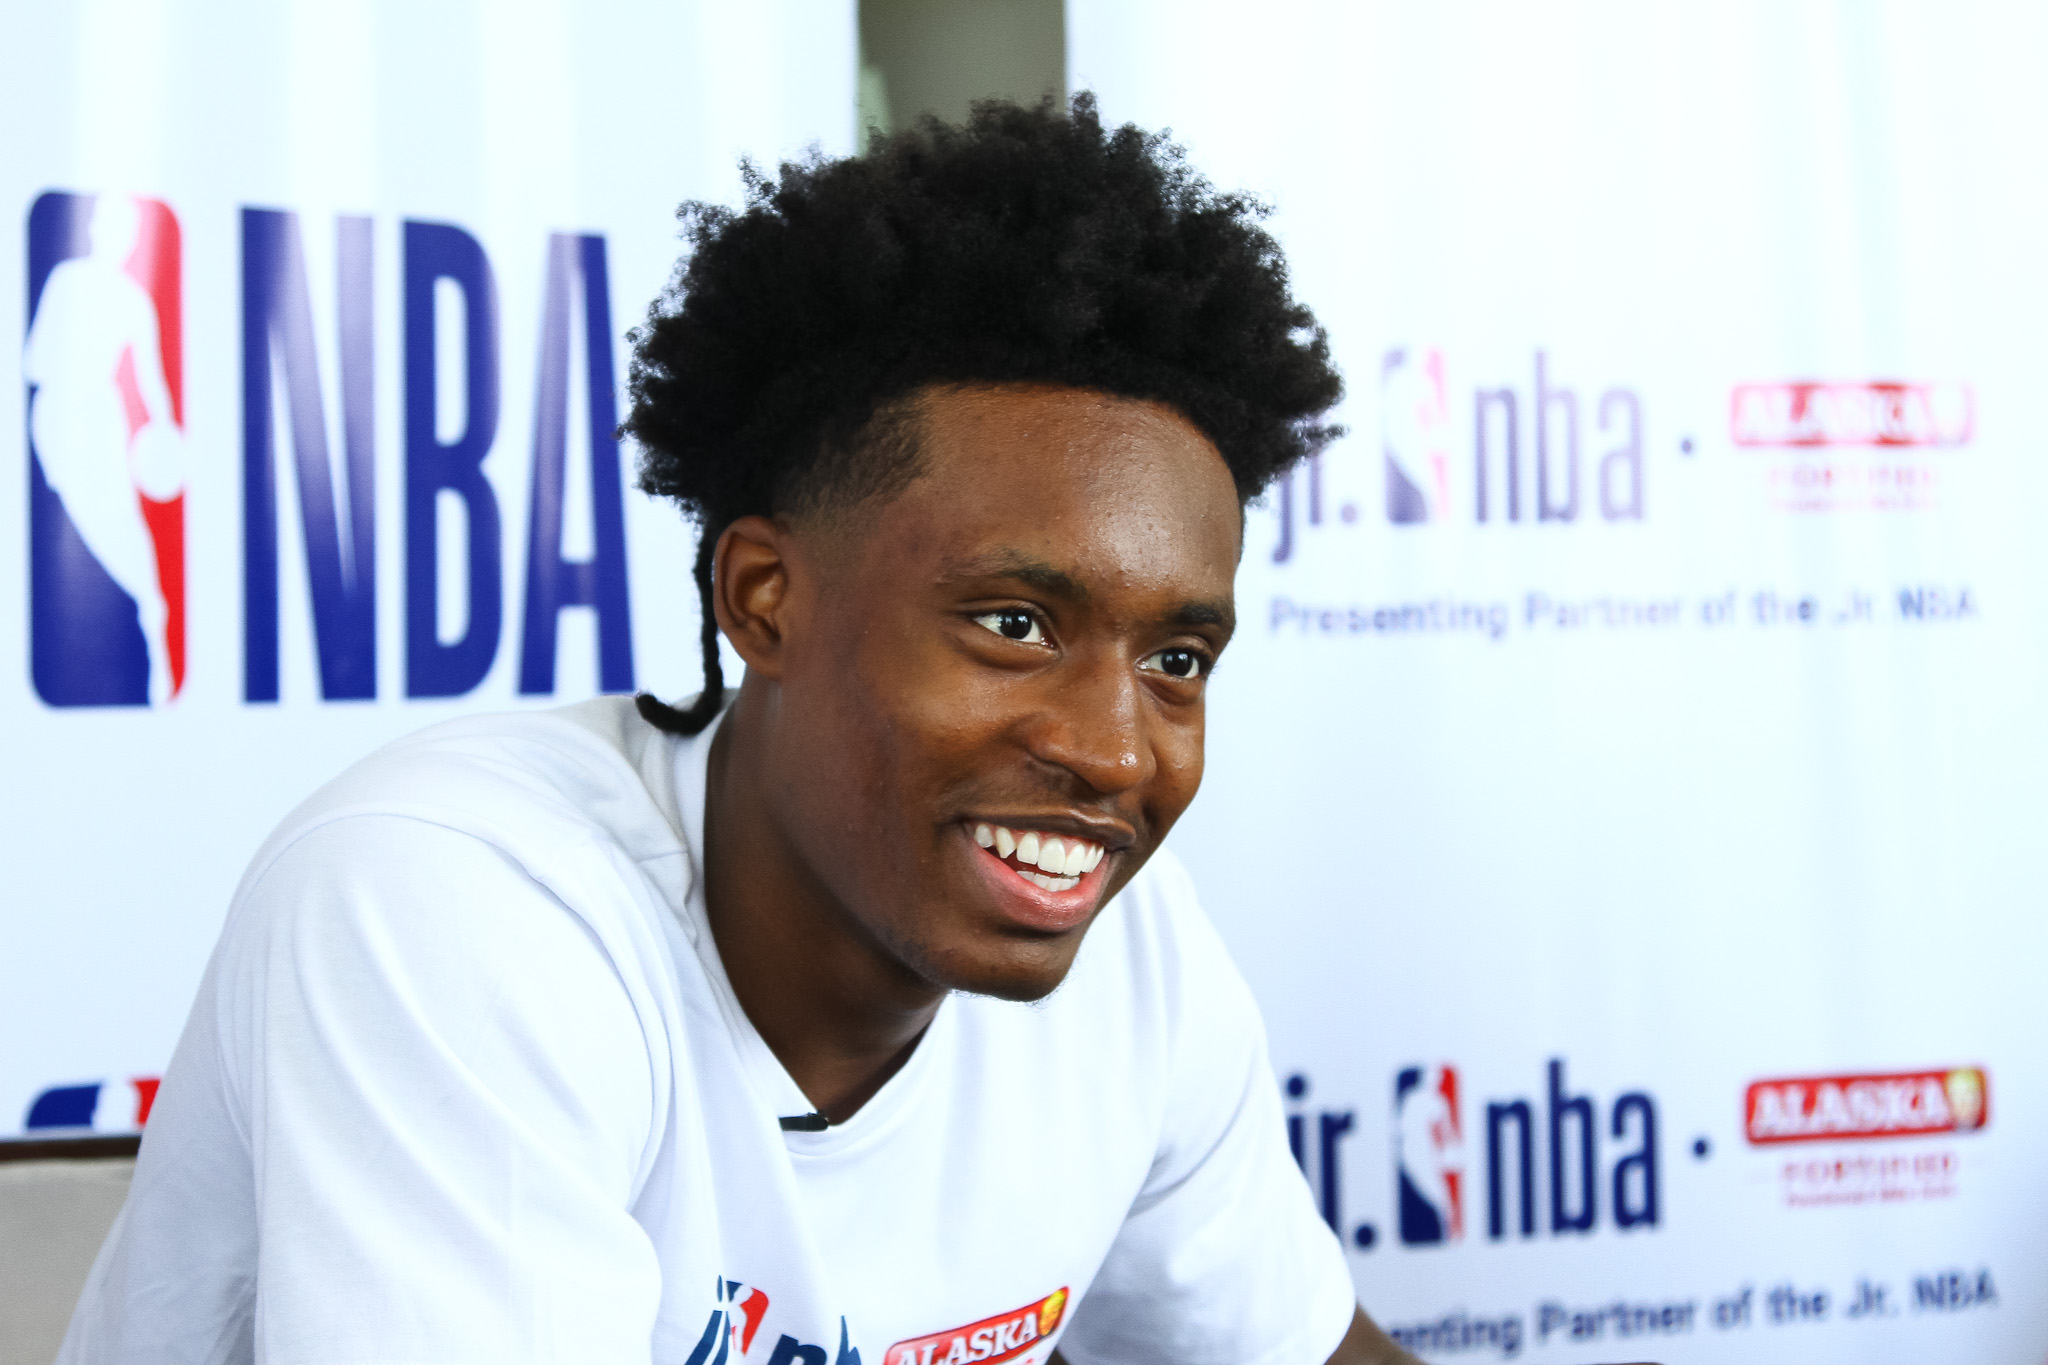 Collin Sexton on the Jr. NBA program: 'This can make a big difference in someone's life'